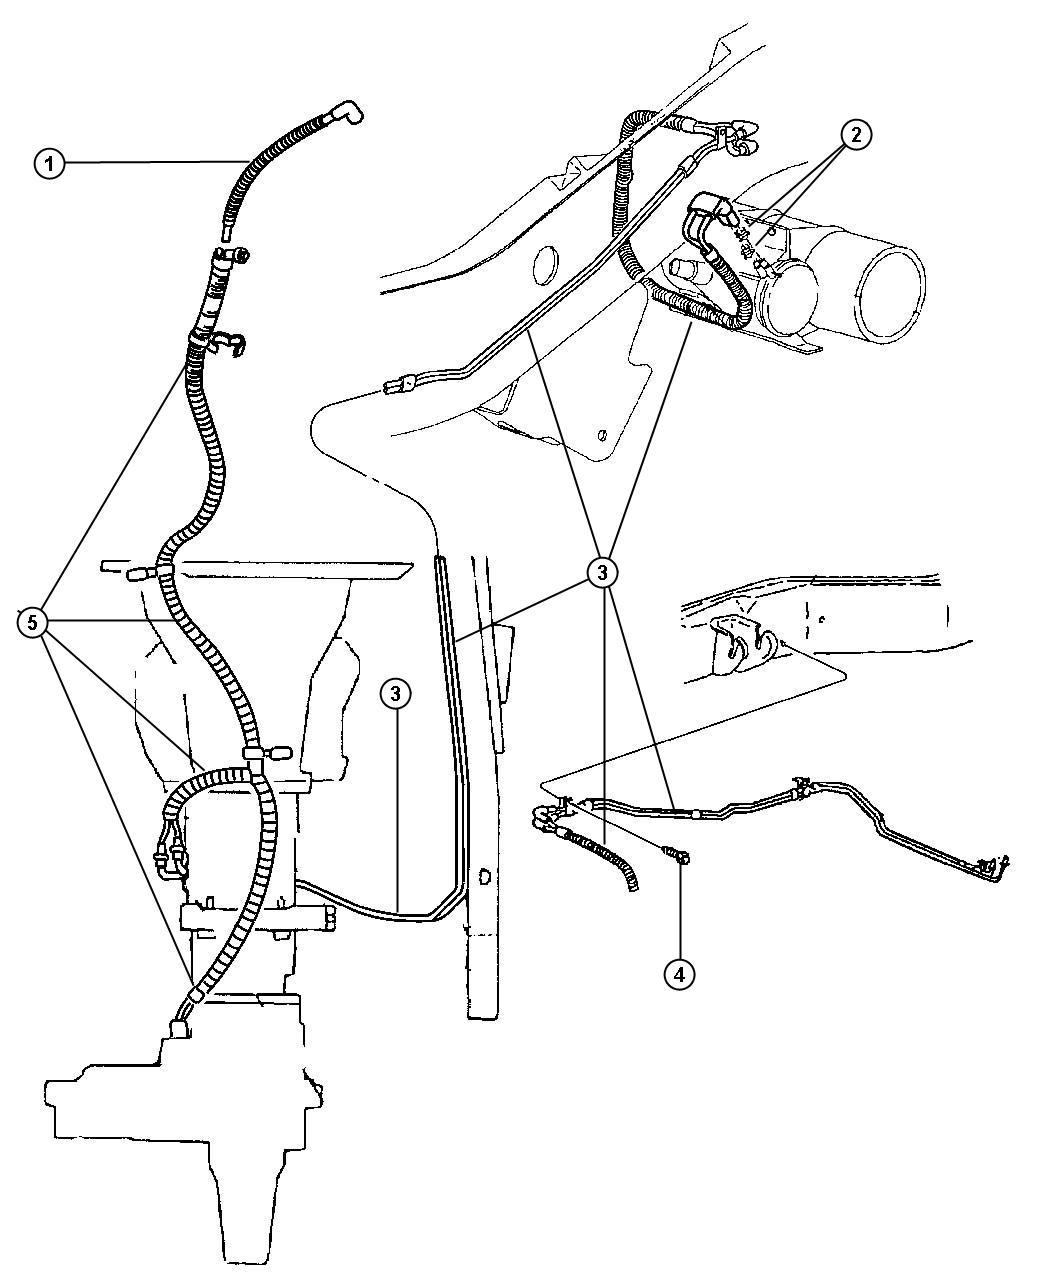 Dodge 46re Wiring Diagram Re Transmission 1997 Auto On